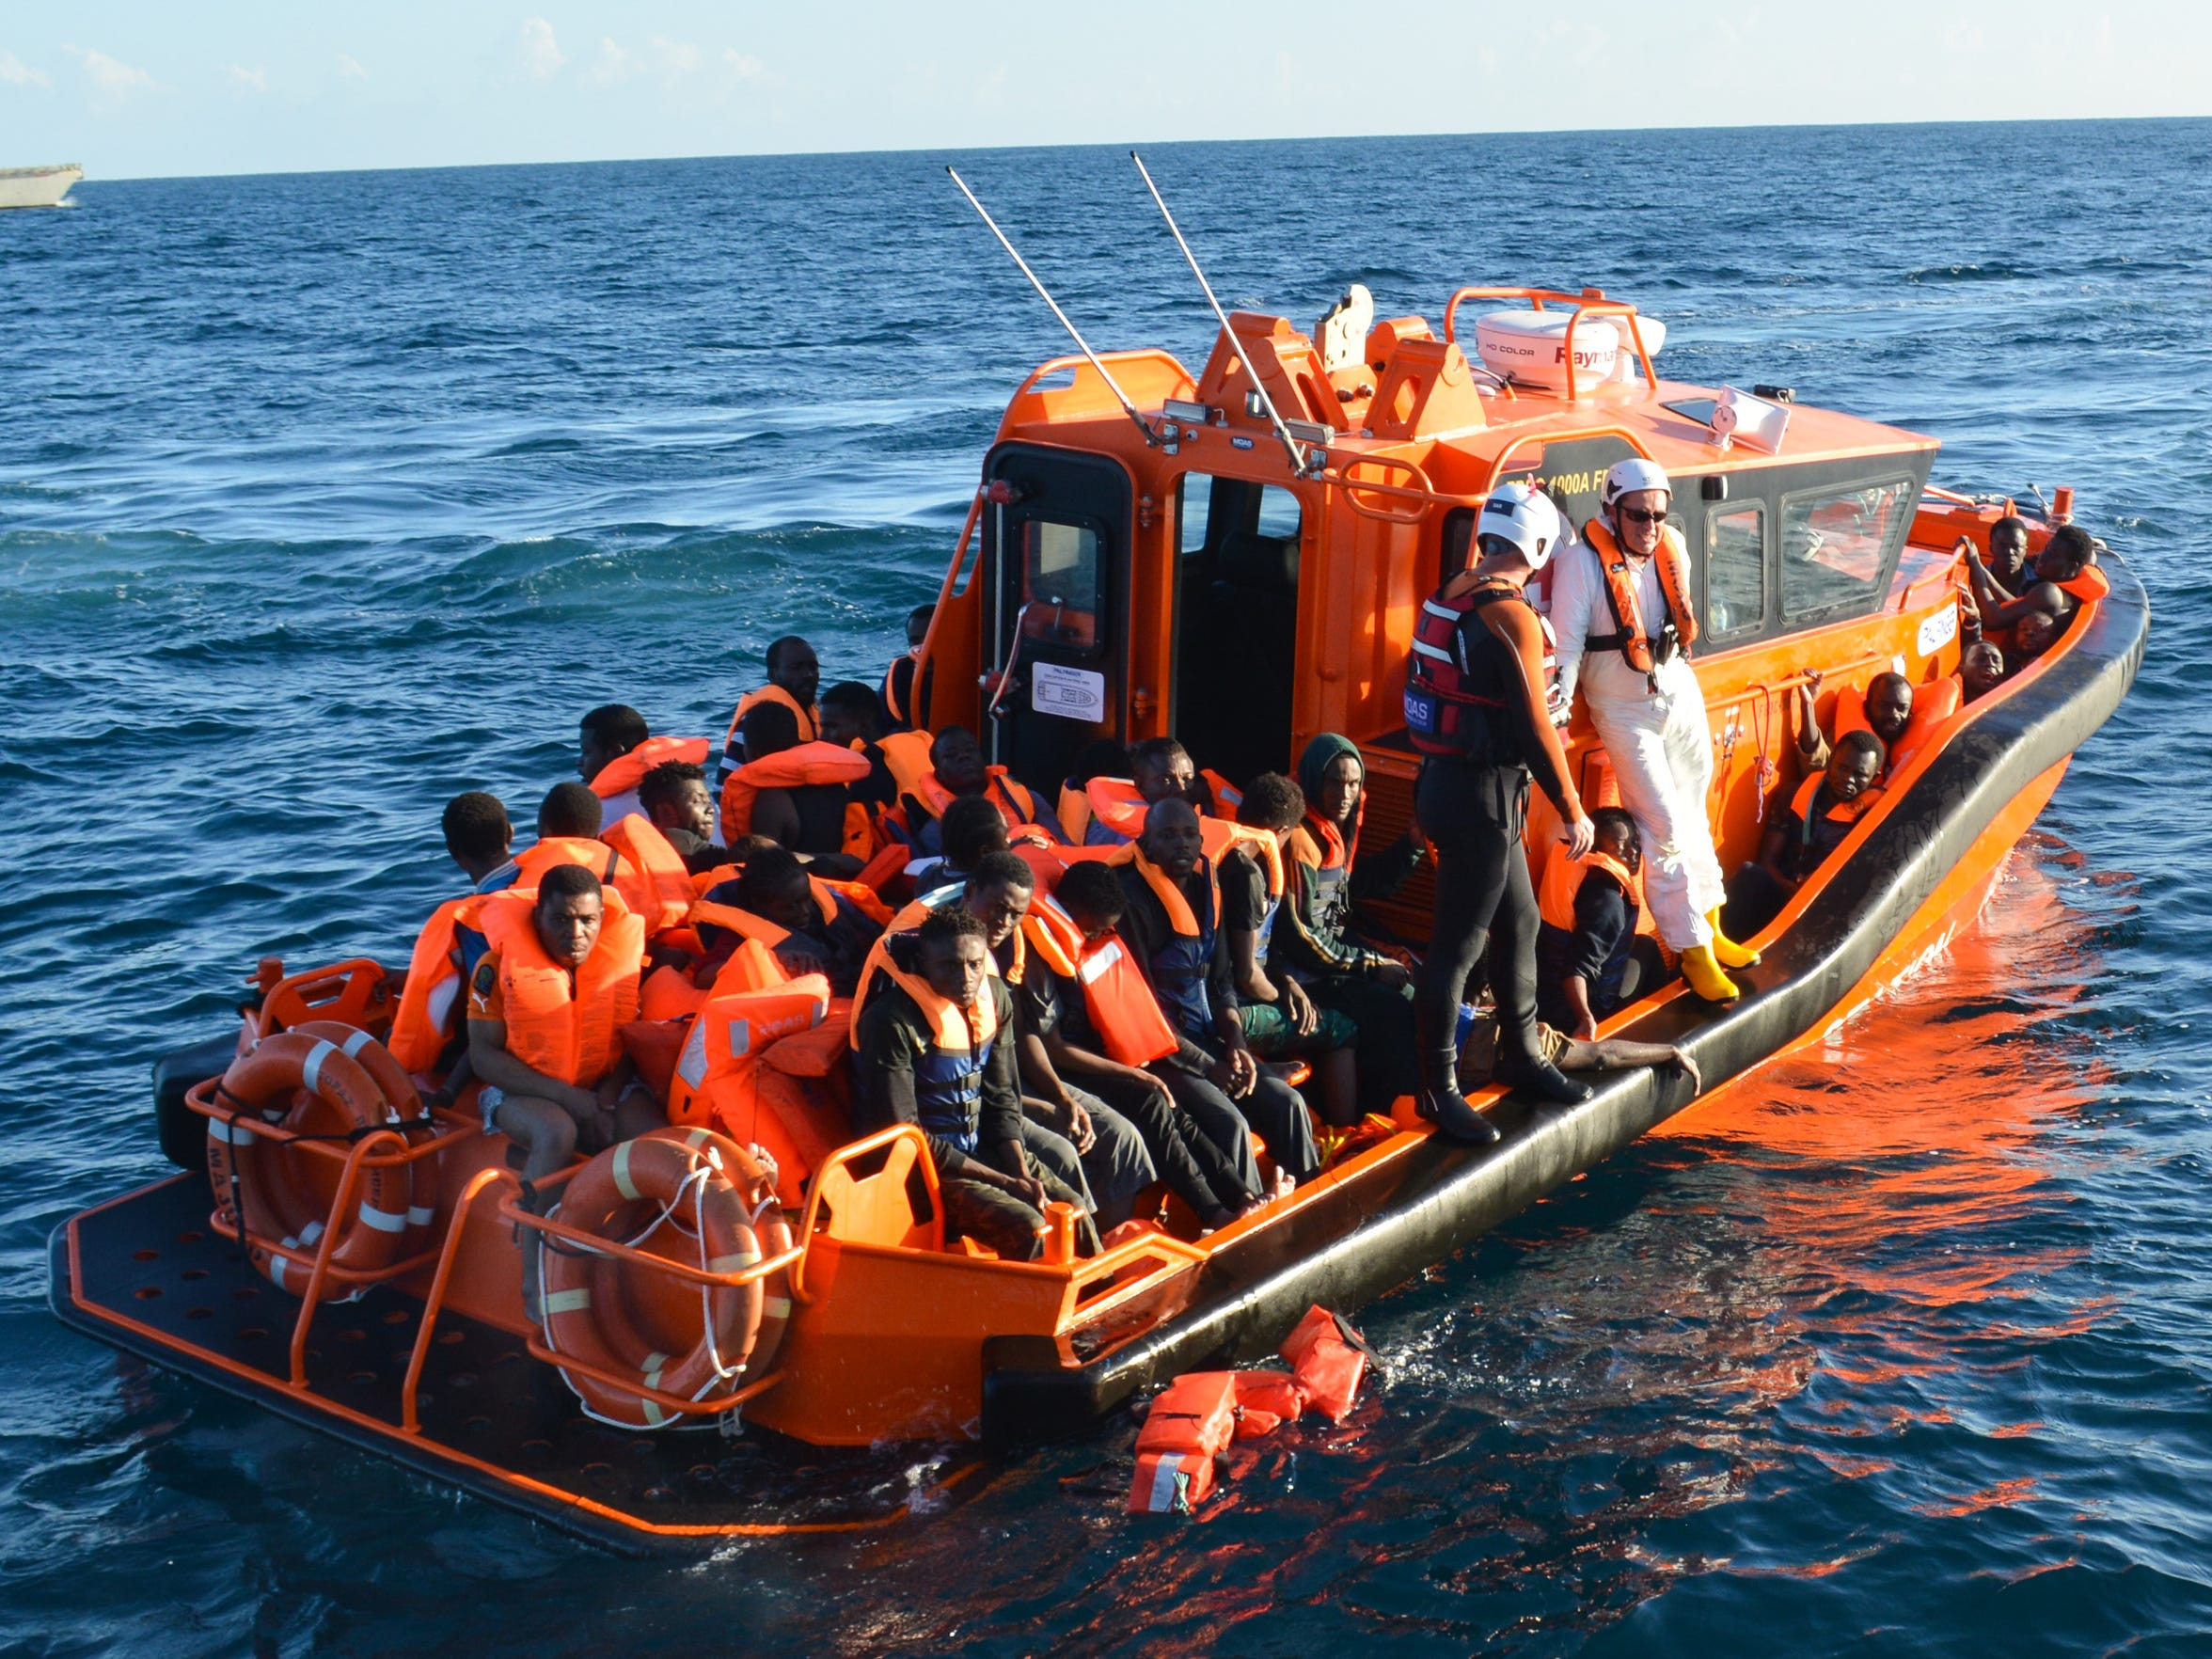 Refugees on a vessel operated by the Migrant Offshore